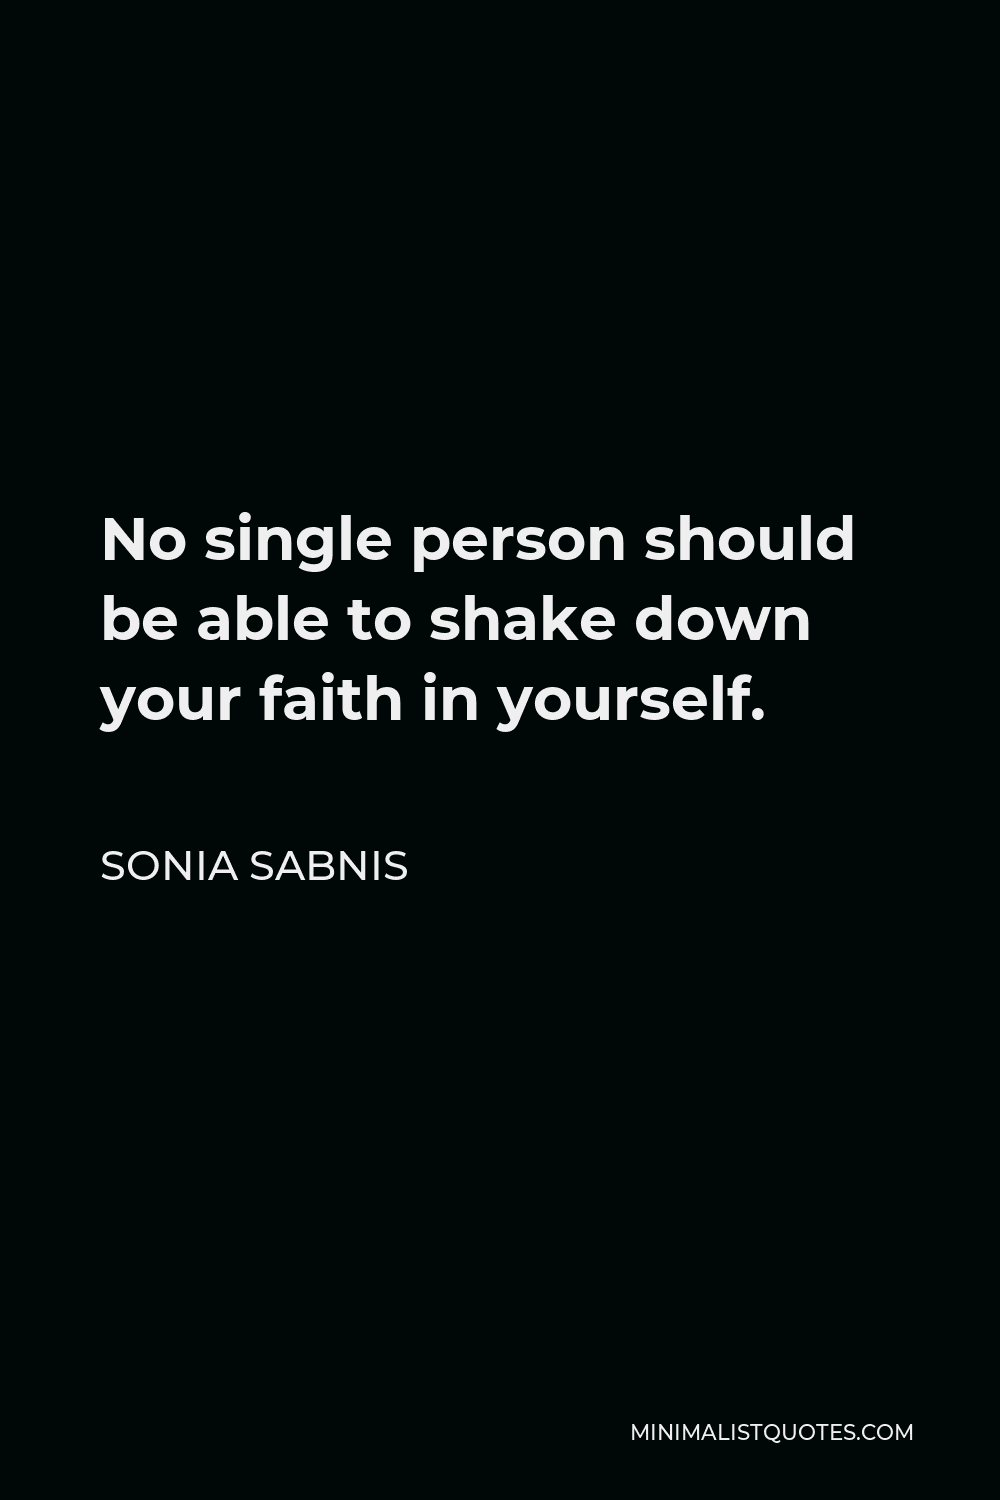 Sonia Sabnis Quote - No single person should be able to shake down your faith in yourself.